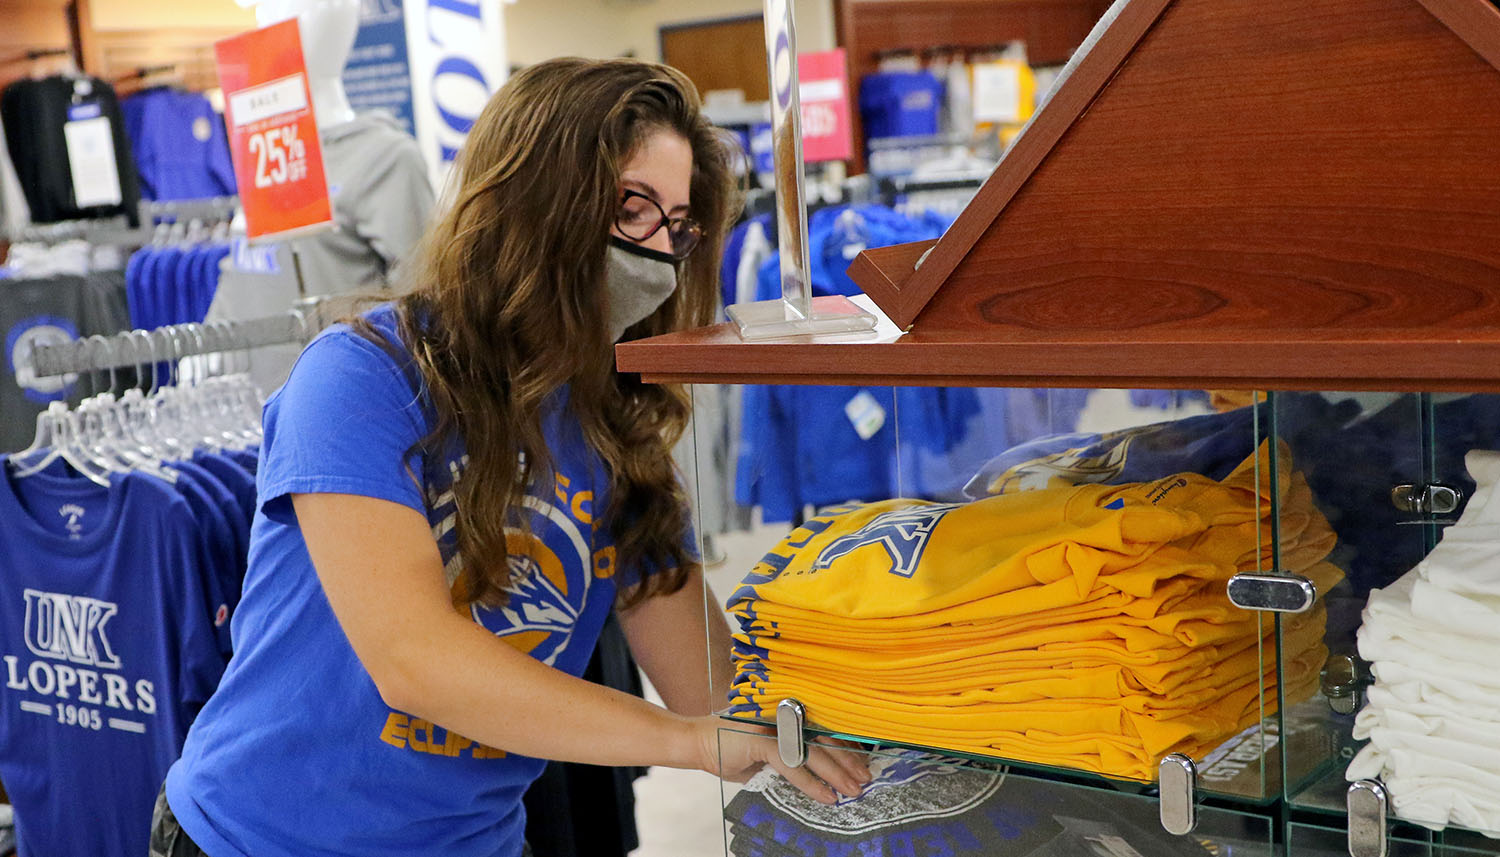 The Antelope Bookstore in UNK's Nebraskan Student Union has several safety measures in place to protect customers and the campus community this fall, including limiting the number of people allowed in the store at one time.